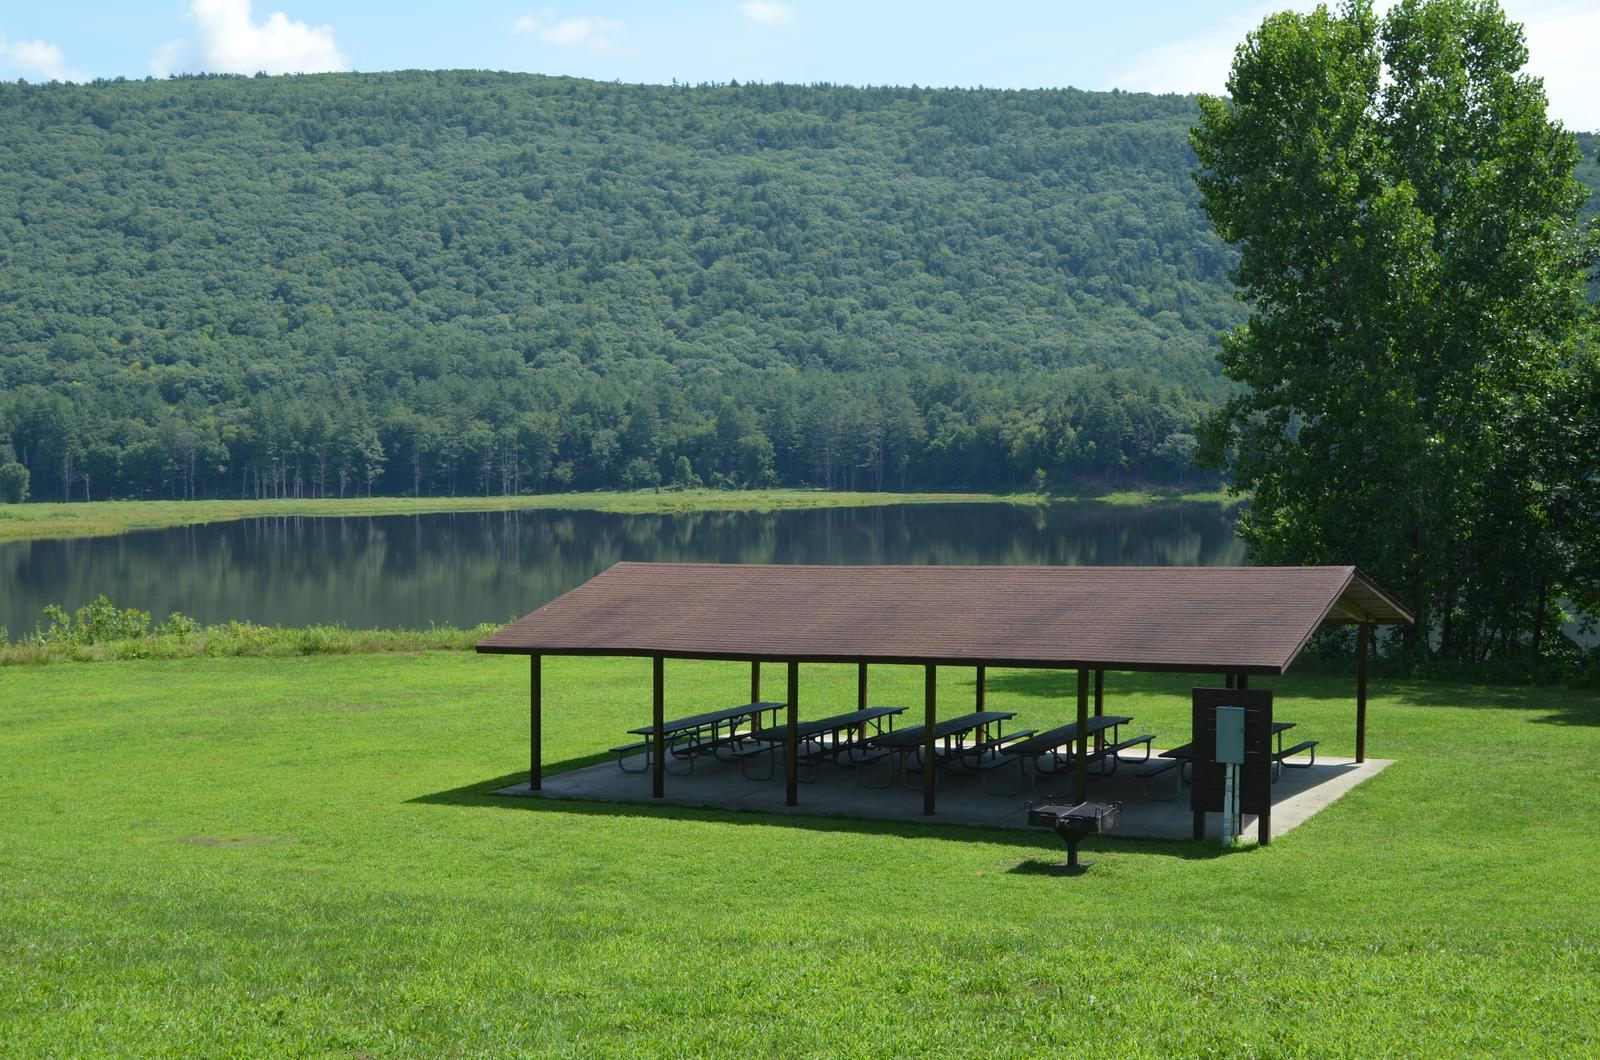 Aspen Shelter at Surry Mountain Lake Beach with the lake and the mountain in the backgroundAspen Shelter at Surry Mountain Lake Beach